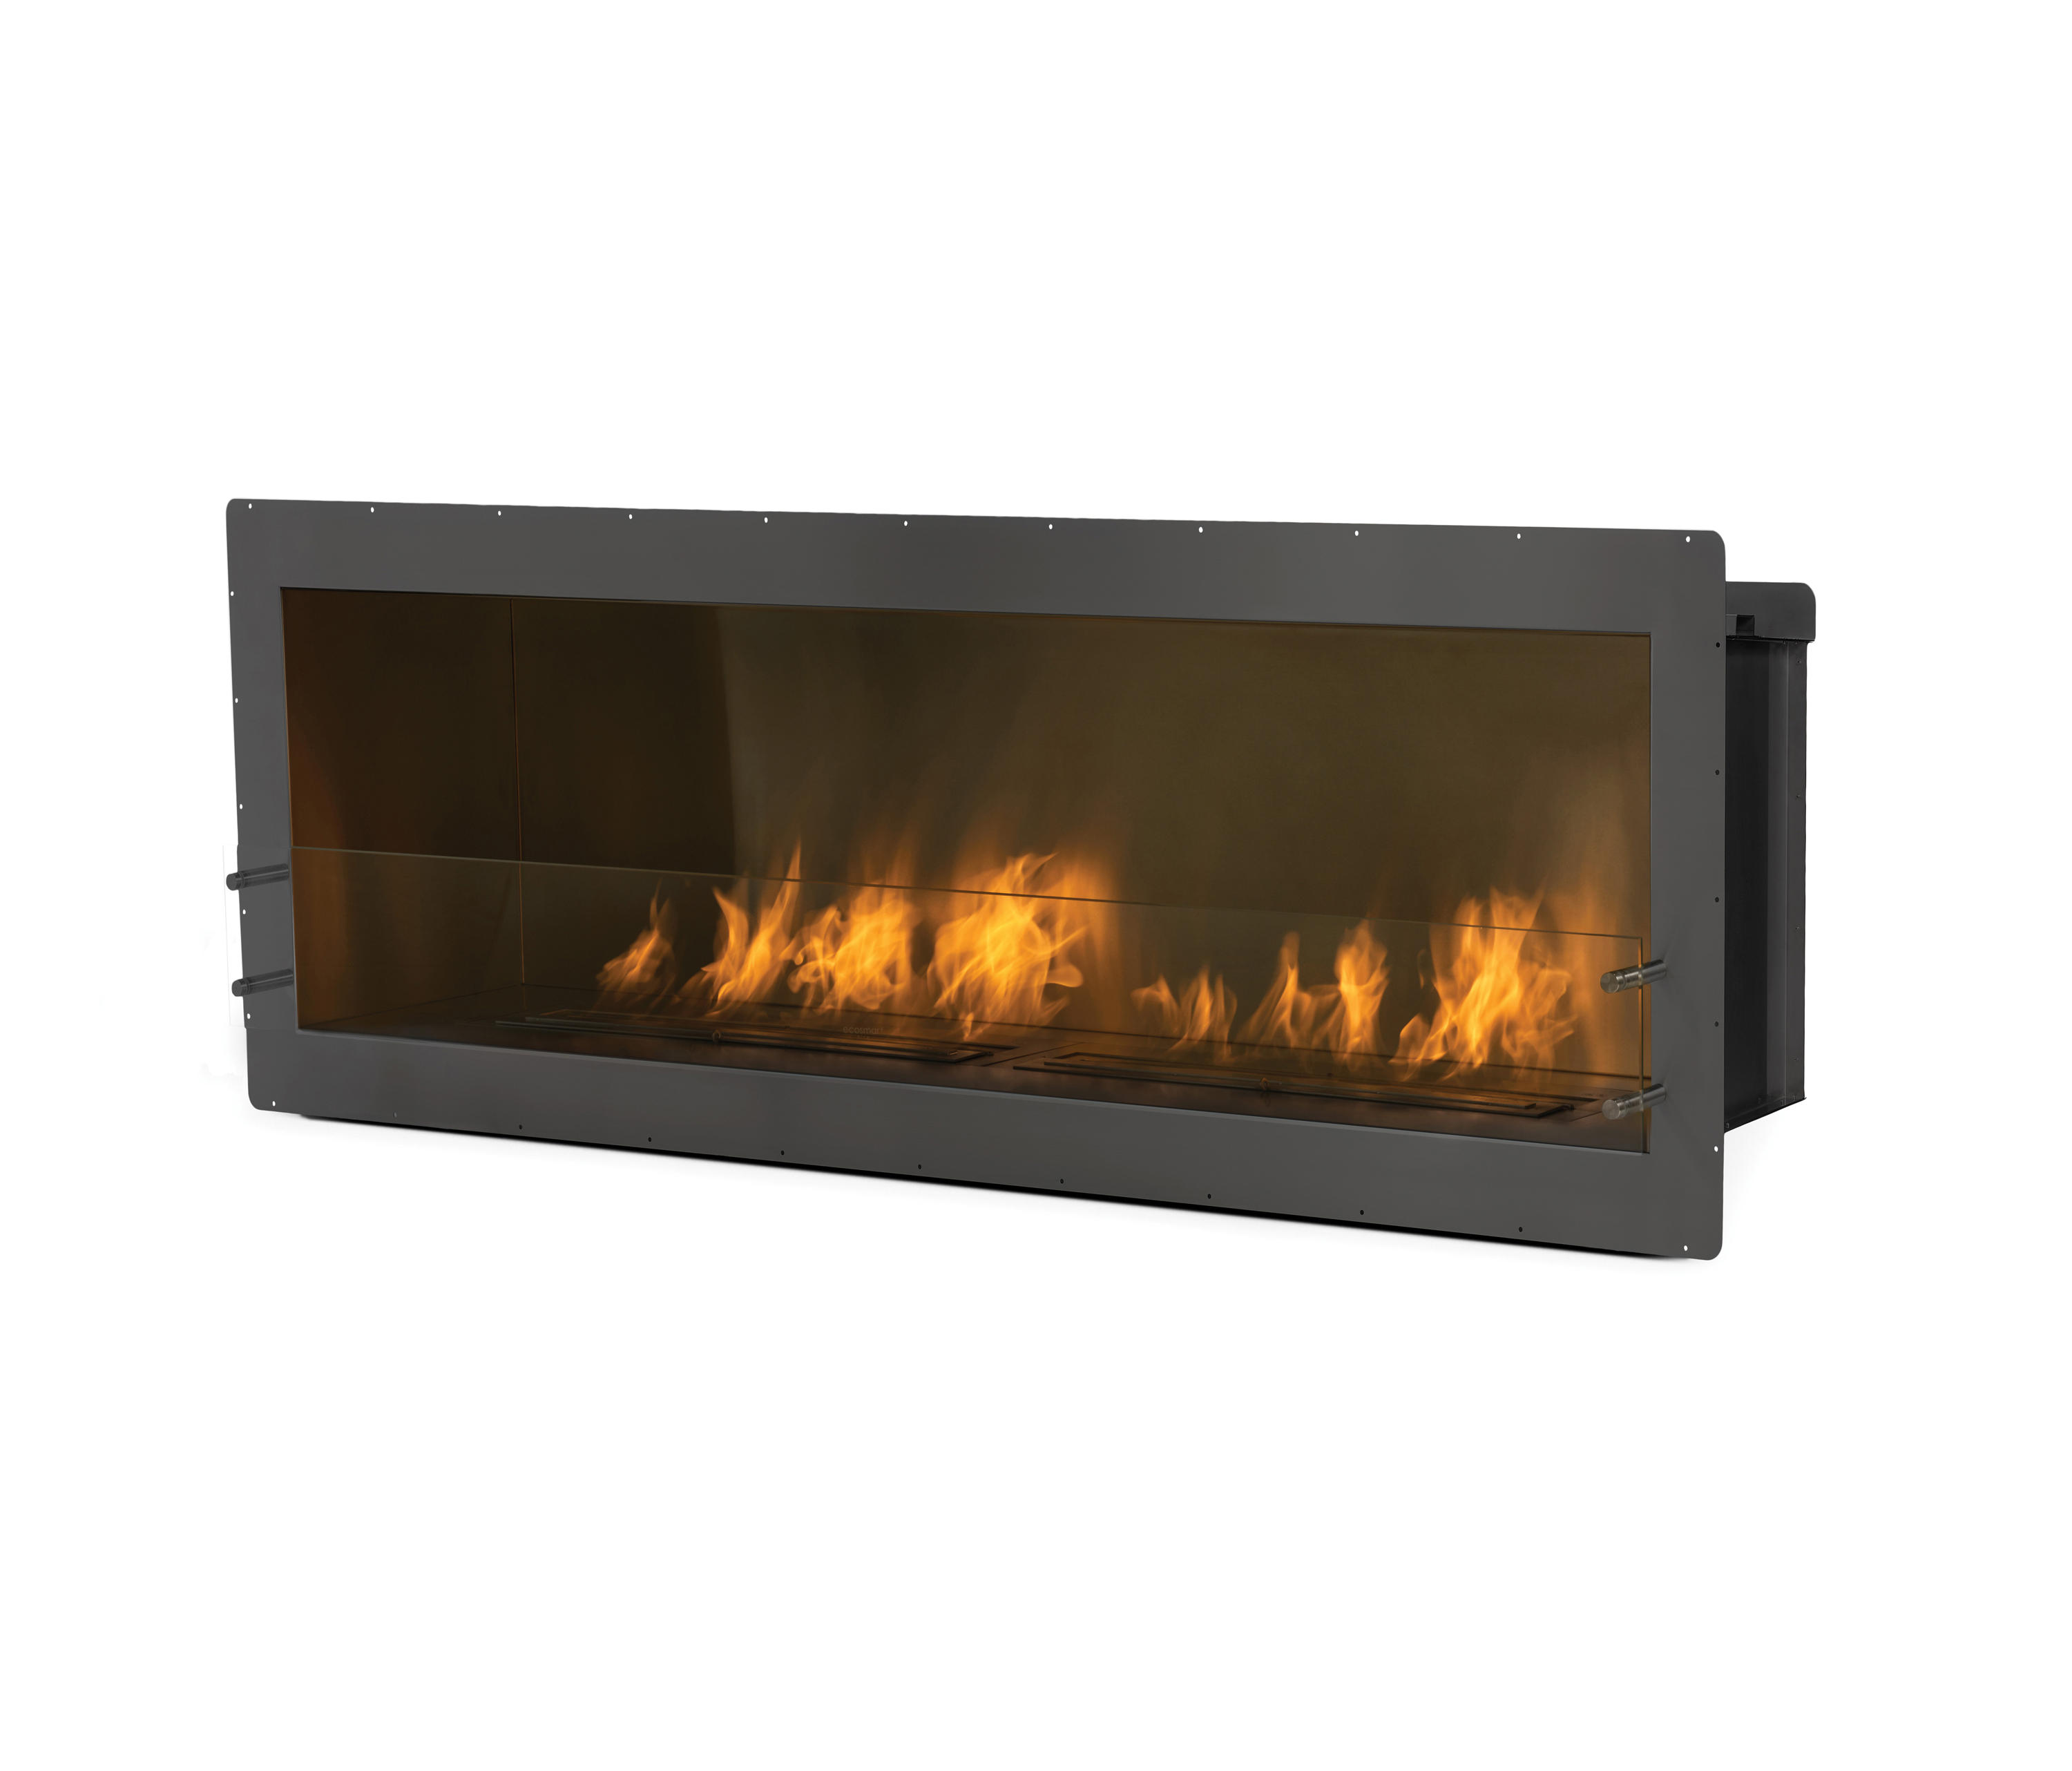 firebox 1700ss ventless ethanol fires from ecosmart. Black Bedroom Furniture Sets. Home Design Ideas